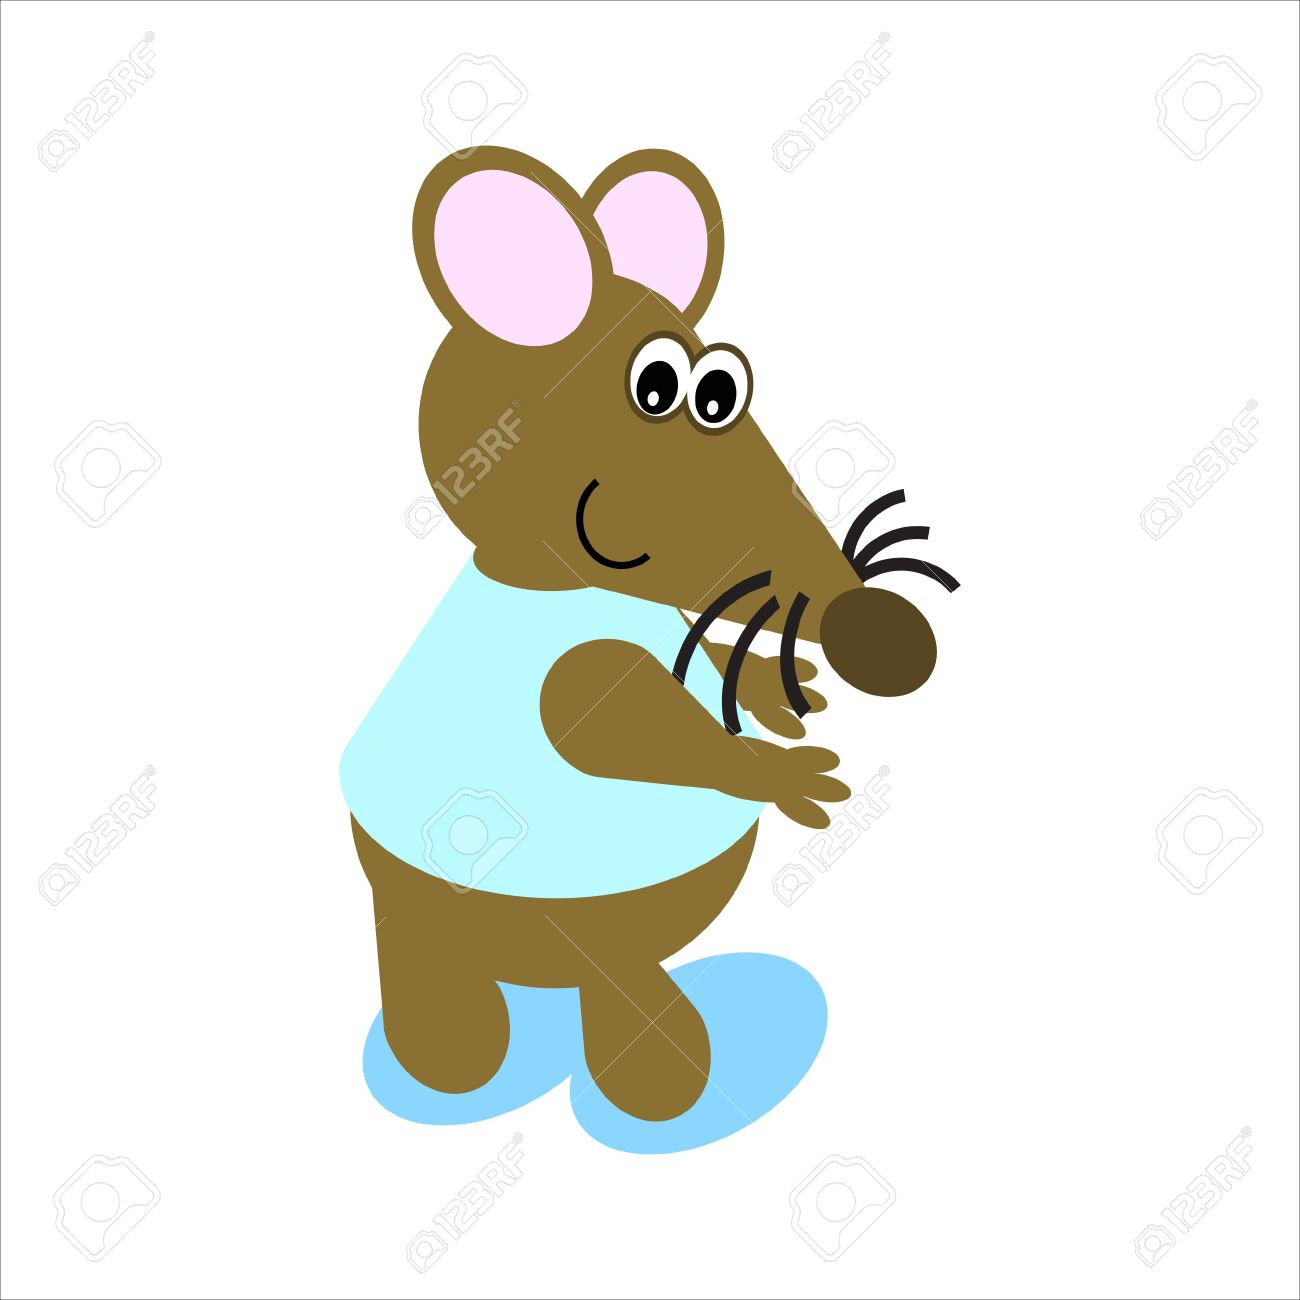 Cartoon of a happy, dancing mouse Stock Photo - 4998195